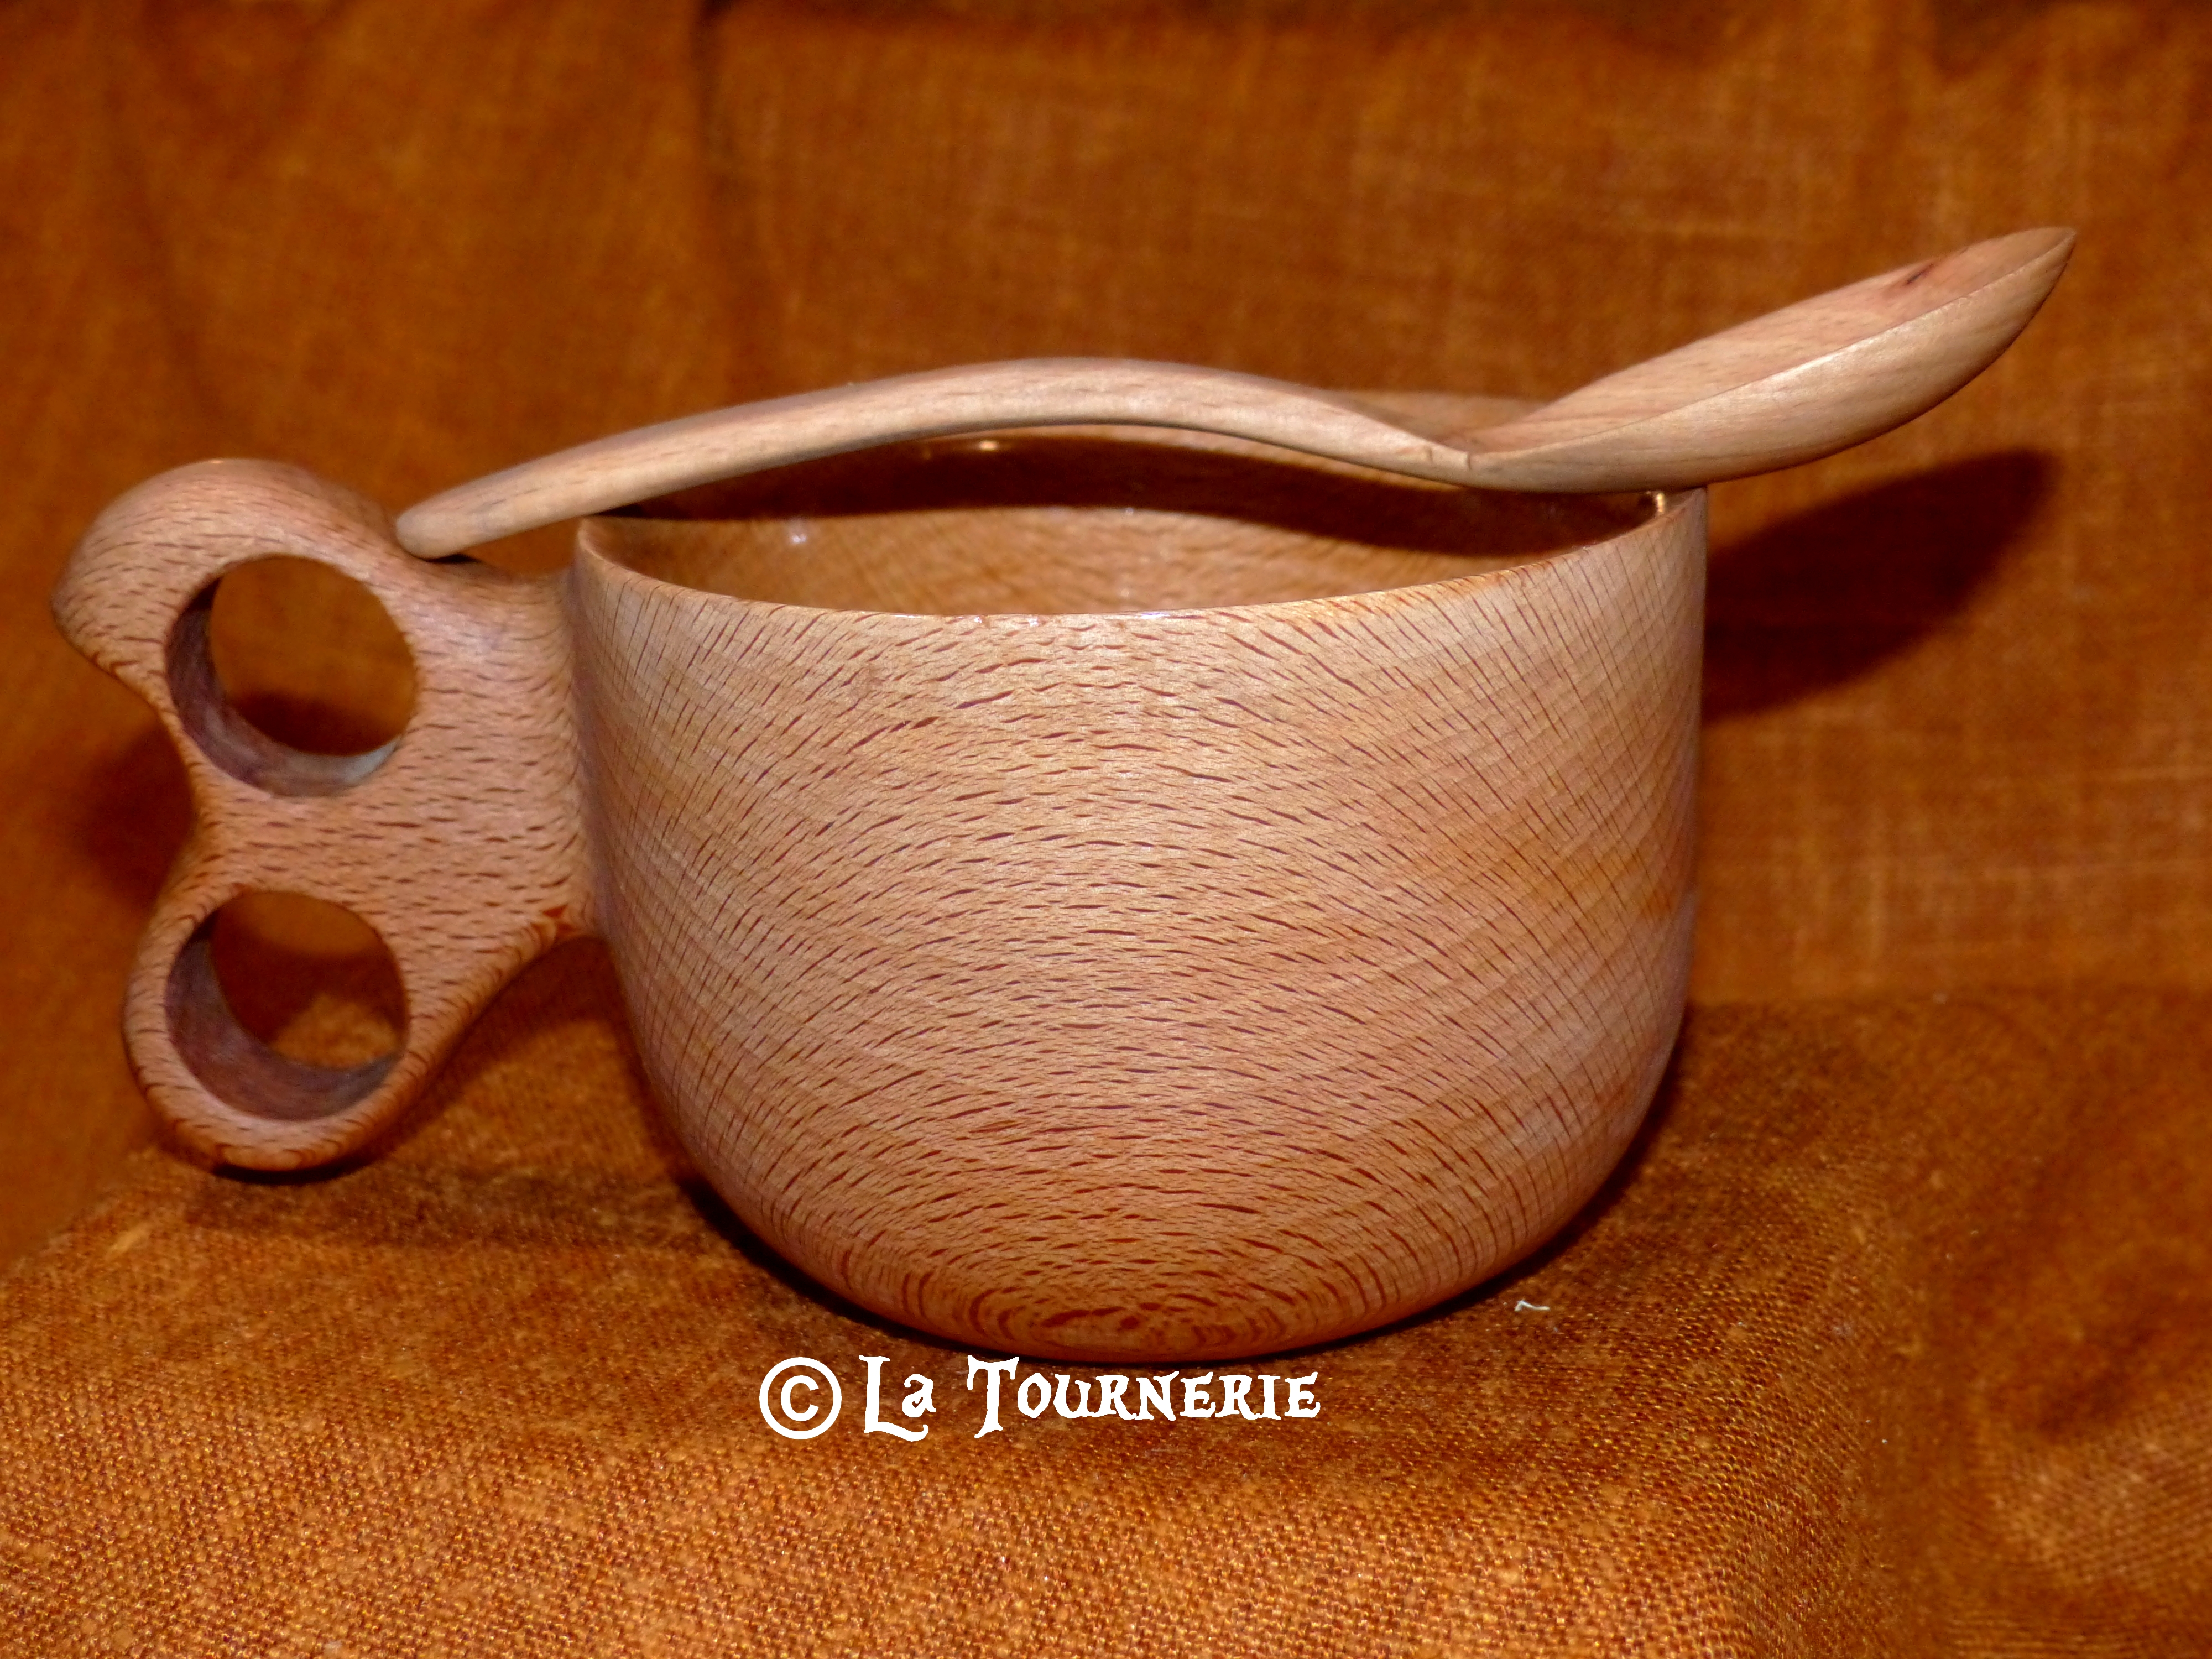 Kuksa / Mug - Made in La Tournerie